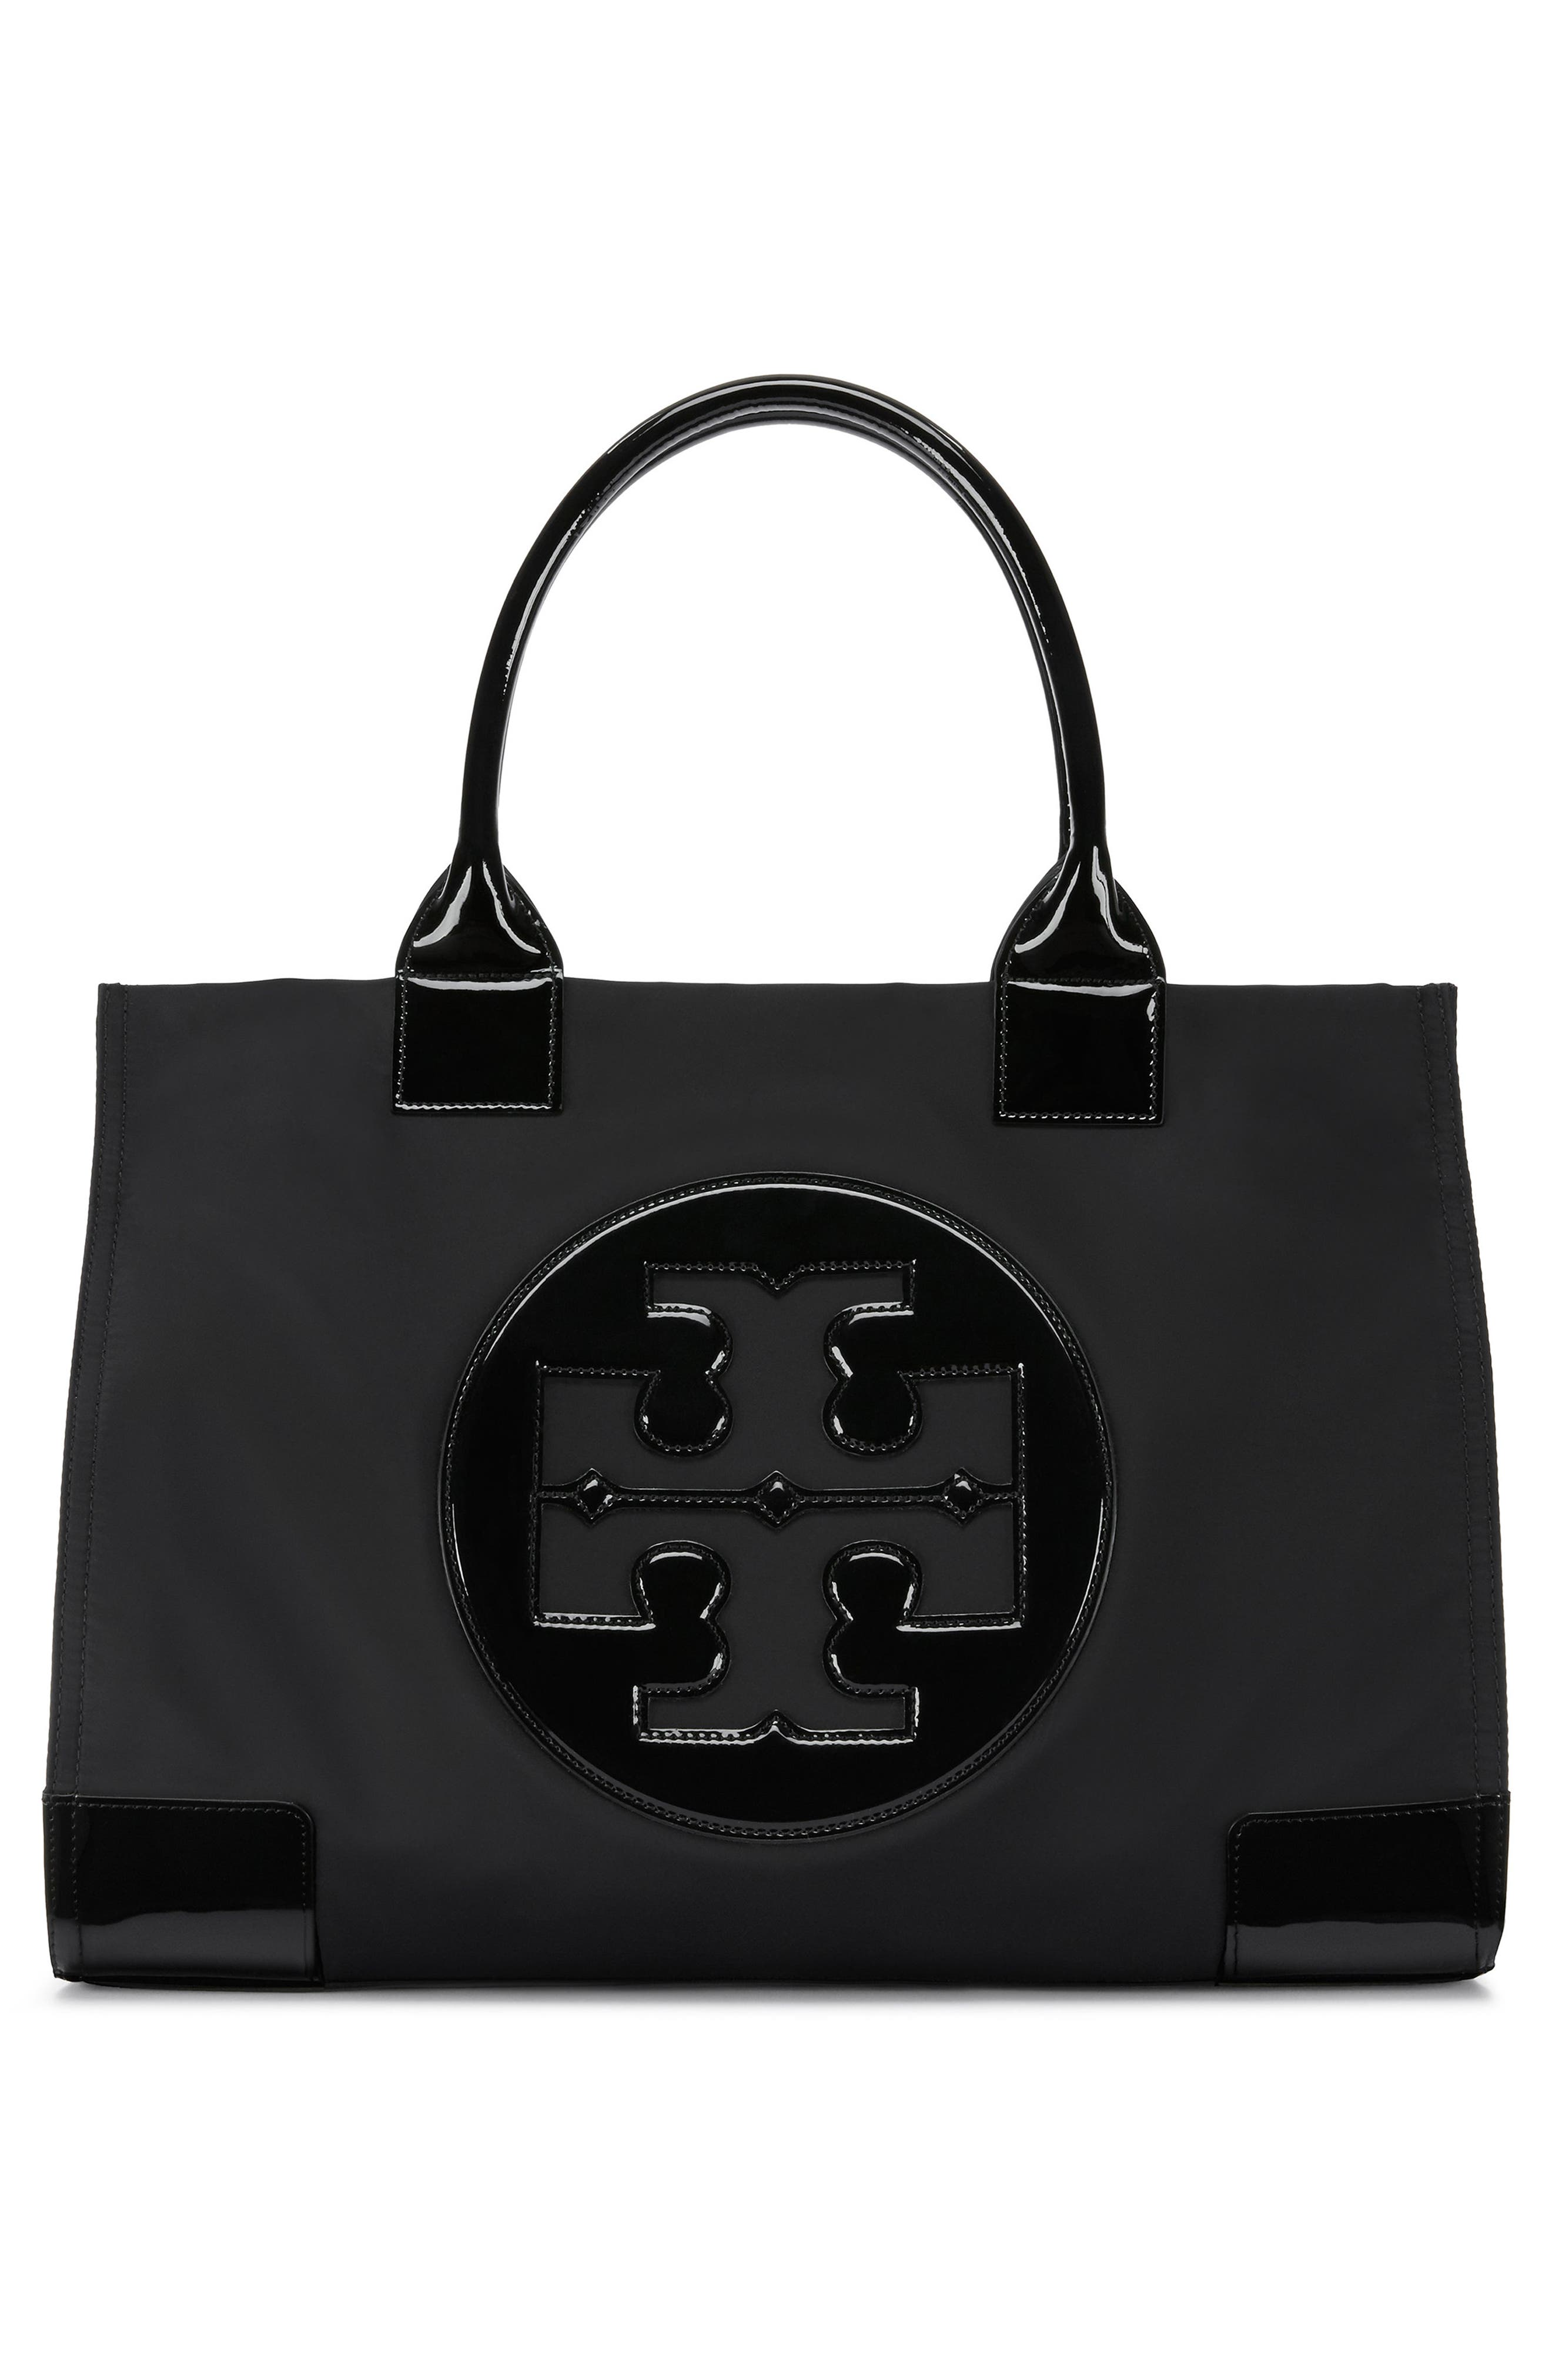 TORY BURCH, 'Ella' Nylon Tote, Alternate thumbnail 2, color, 001